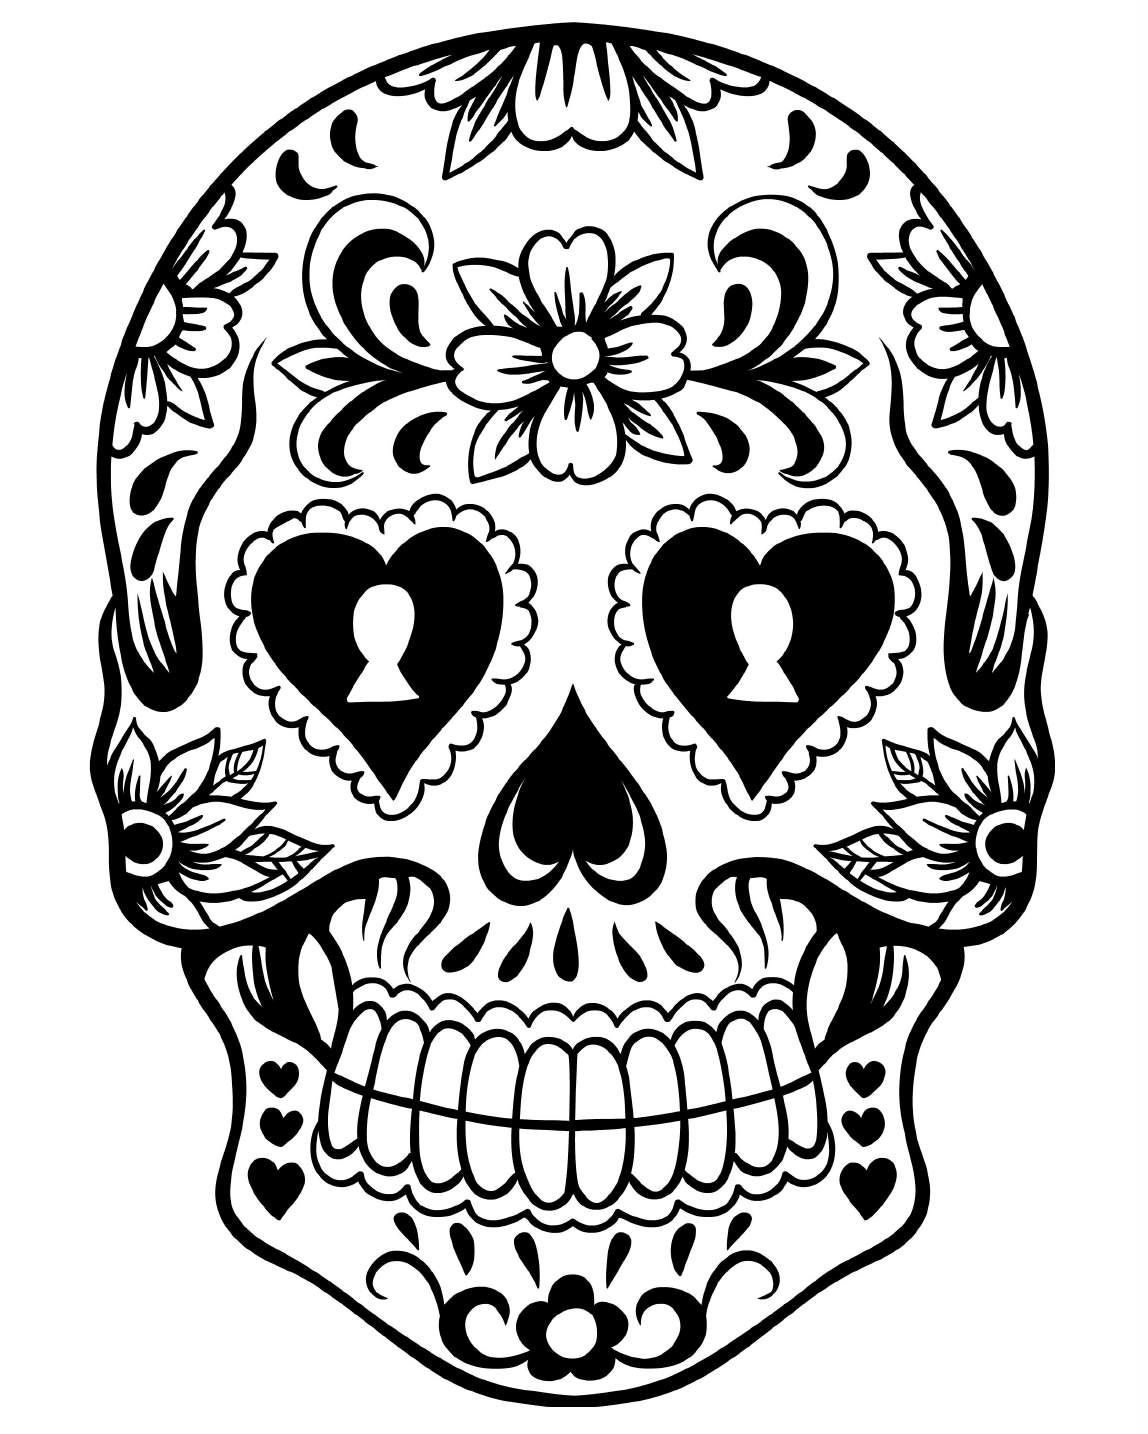 day of the dead template free día de los muertos printable modern art 4 kids day of template the dead